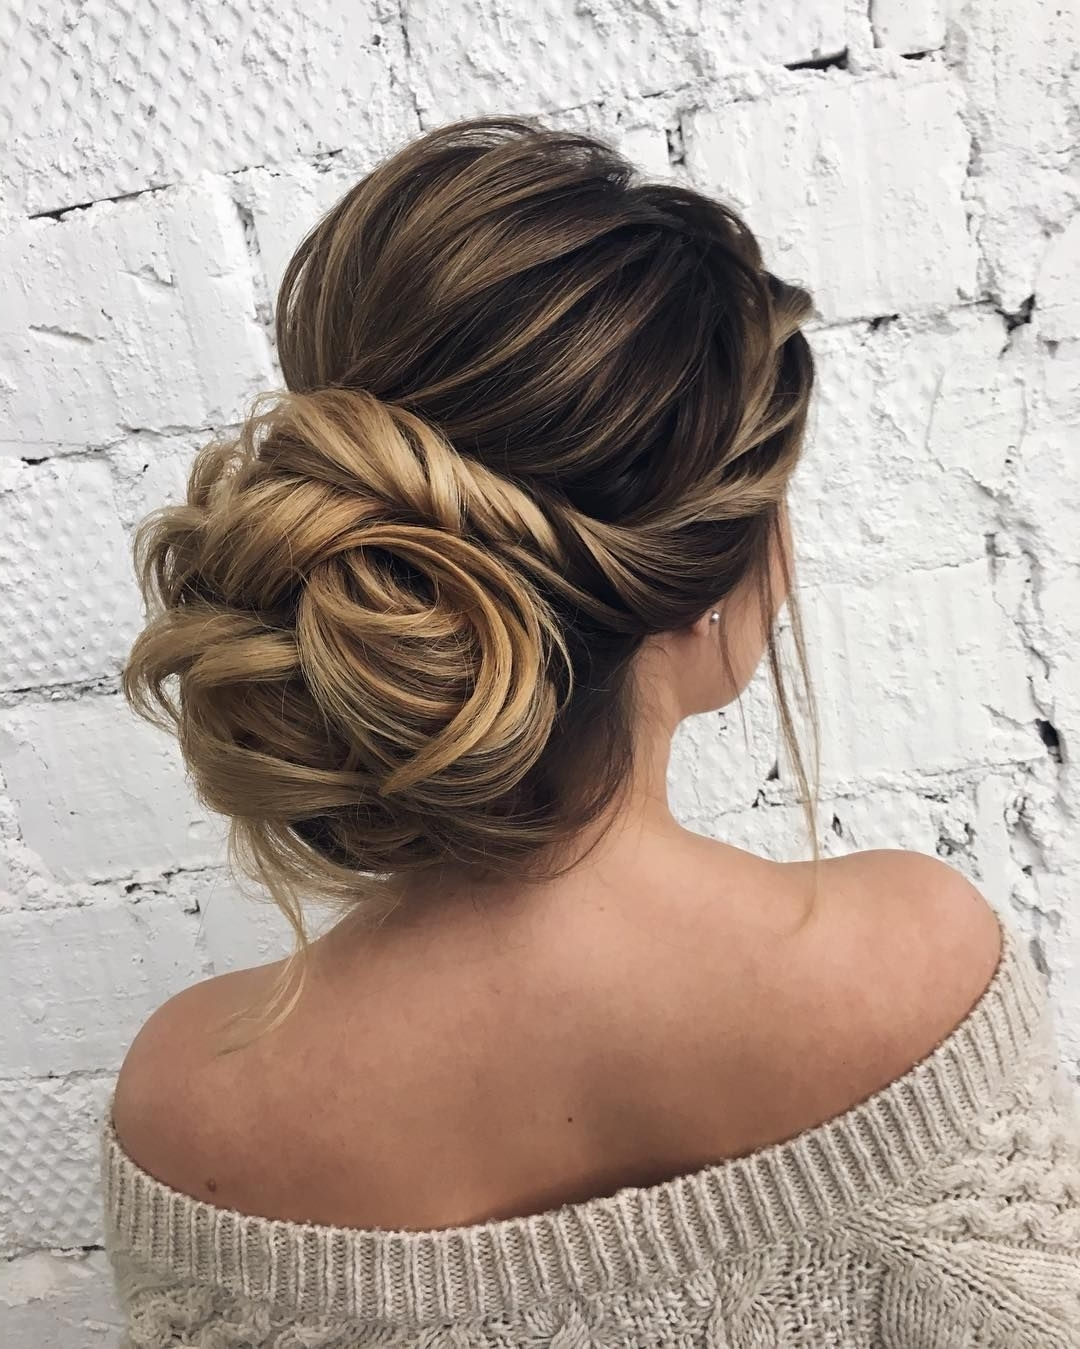 2019 Popular Updo Hairstyles For Strapless Dress